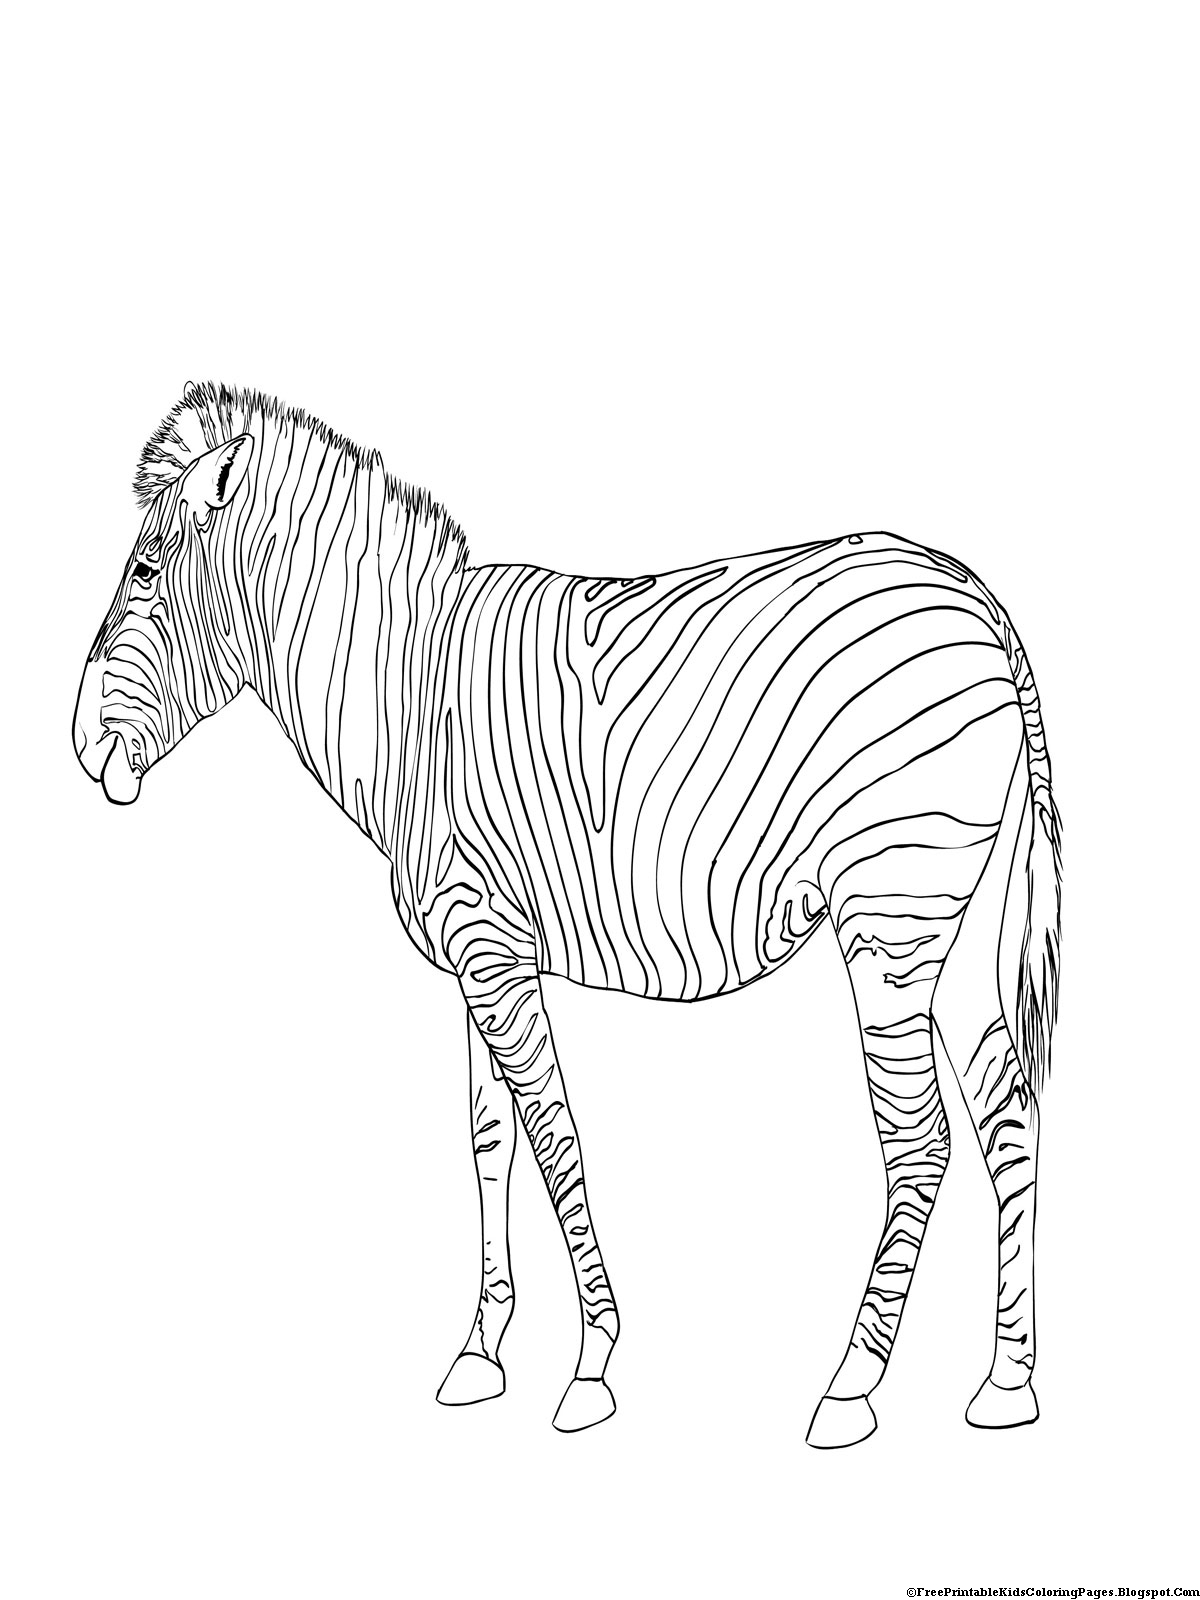 coloring pages to print for free zebra coloring pages free printable kids coloring pages to pages coloring free print for